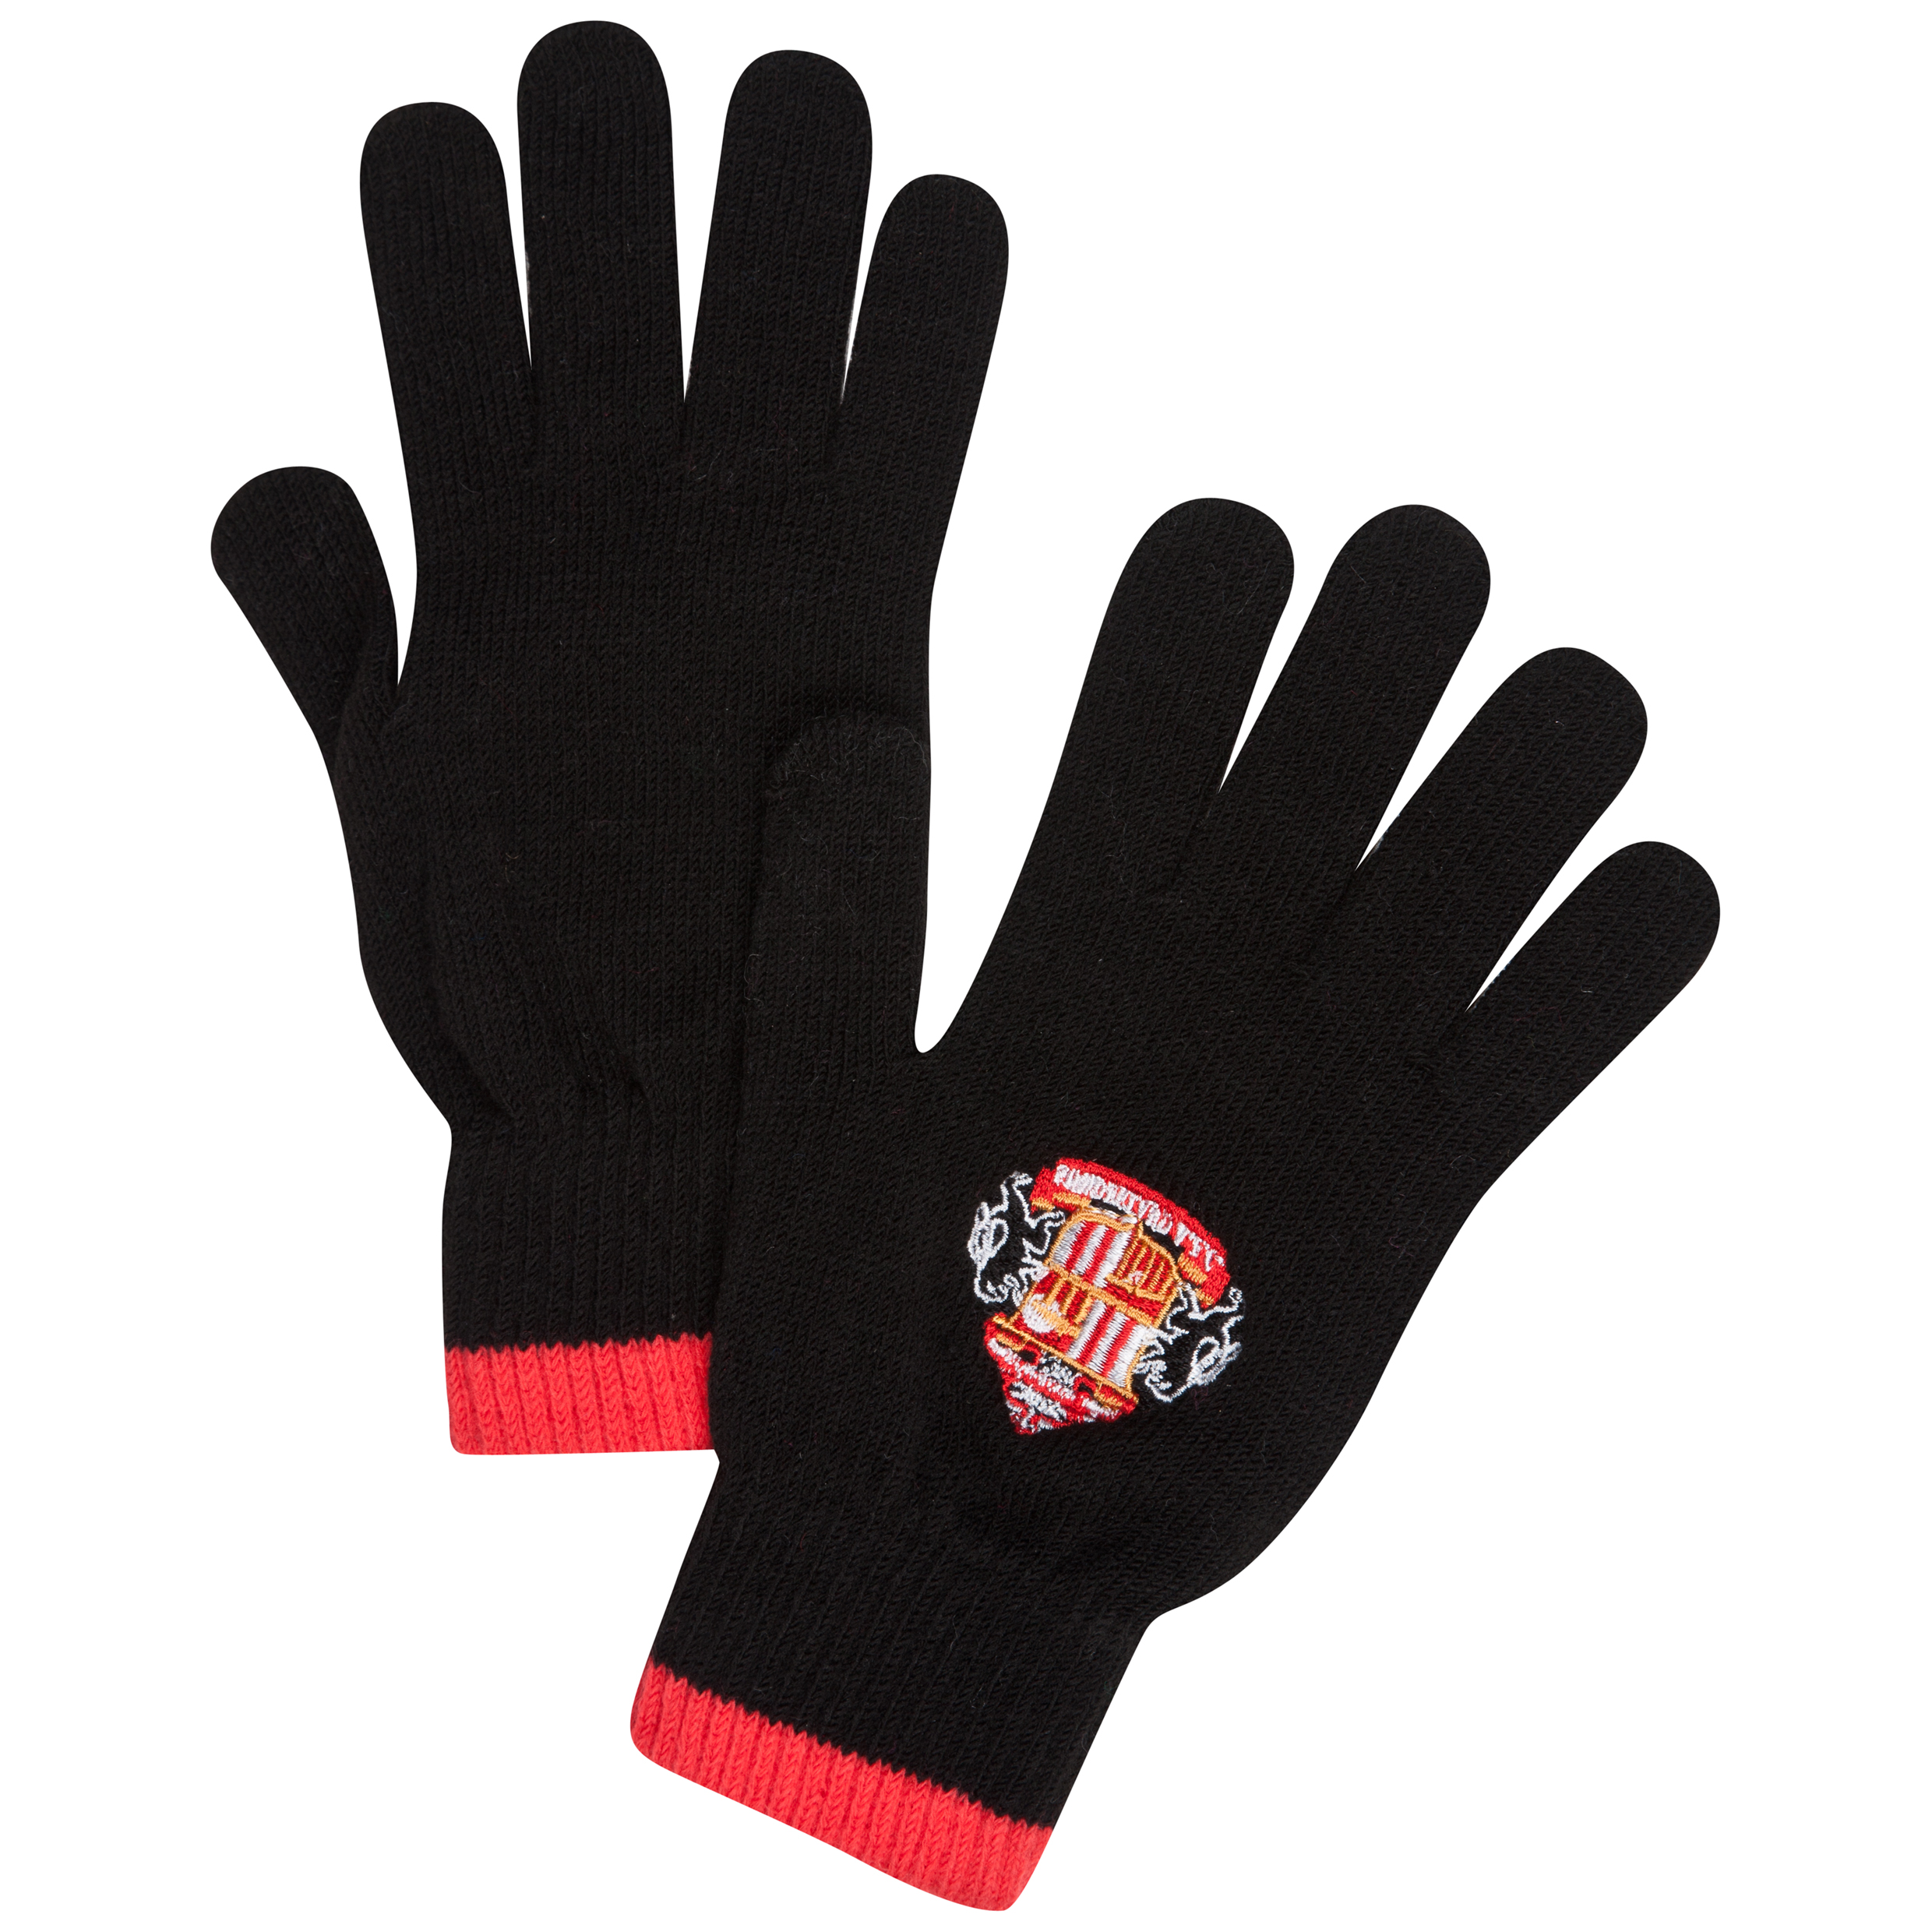 Sunderland Core Knitted Gloves - Black